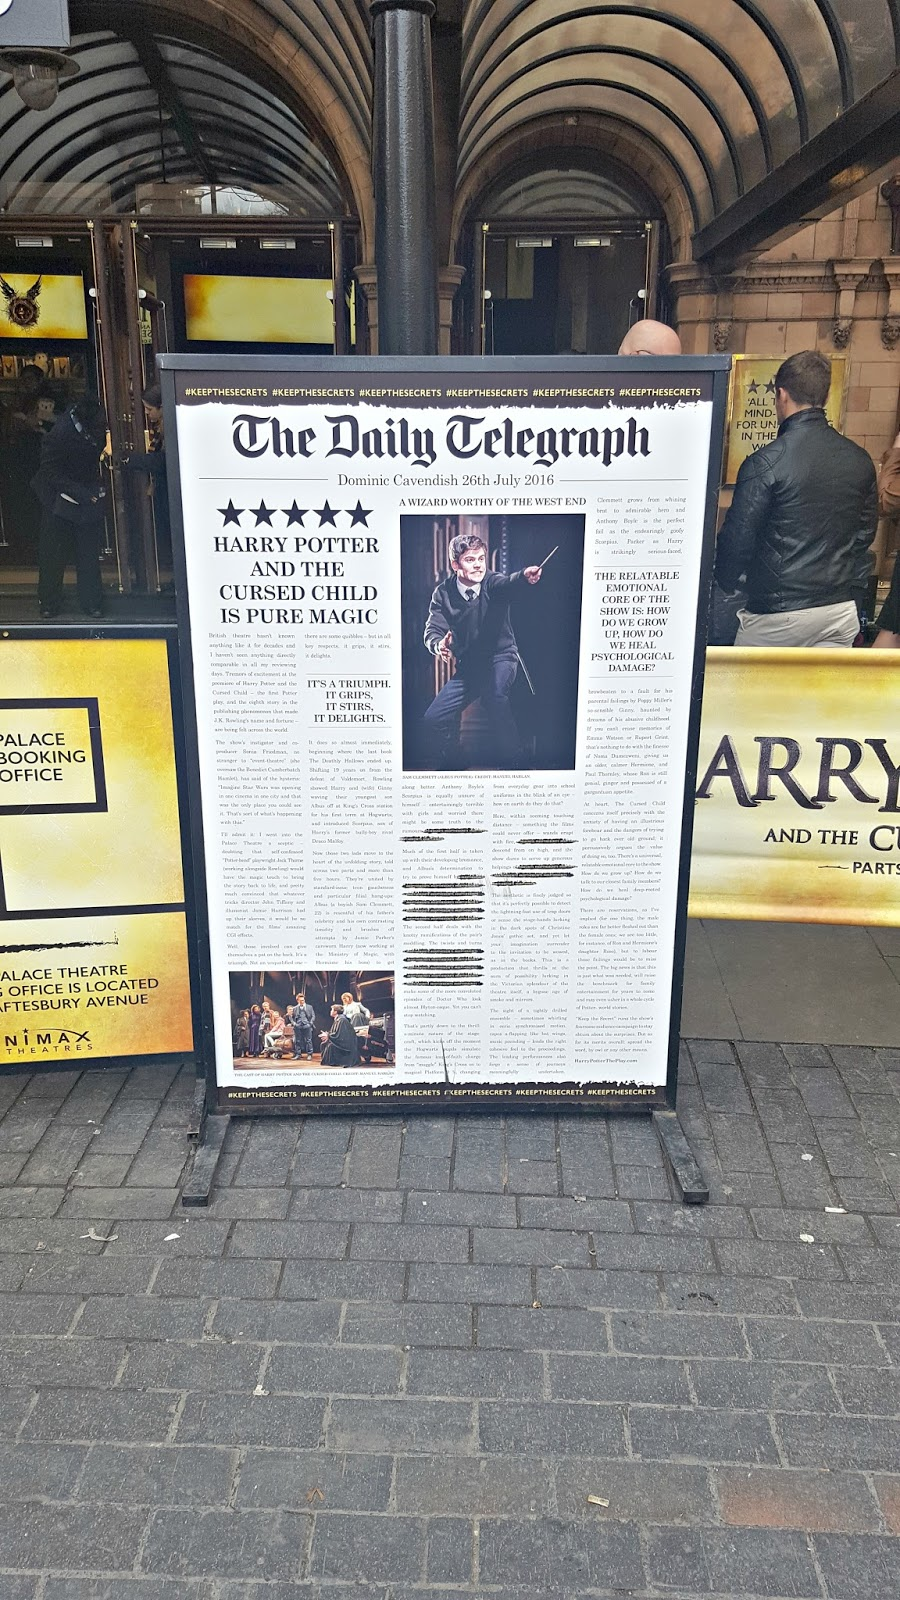 Harry Potter at The Palace Theatre